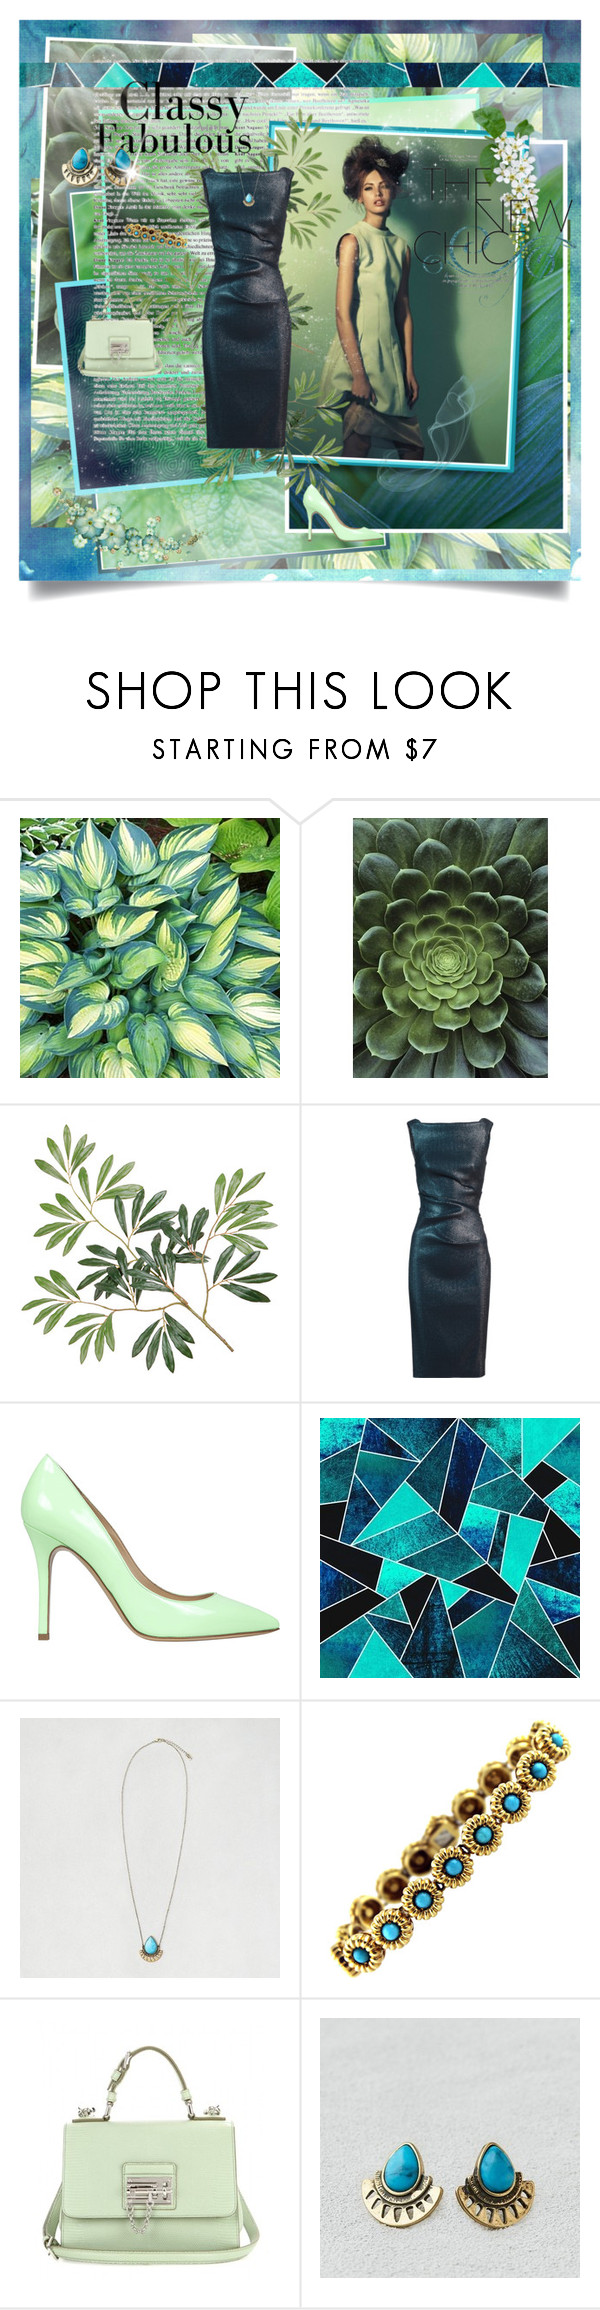 """Green dream"" by kristina-kazlauskaite ❤ liked on Polyvore featuring mode, Talbot Runhof, Semilla, American Eagle Outfitters, Tiffany & Co., Dolce&Gabbana, women's clothing, women's fashion, women en female"